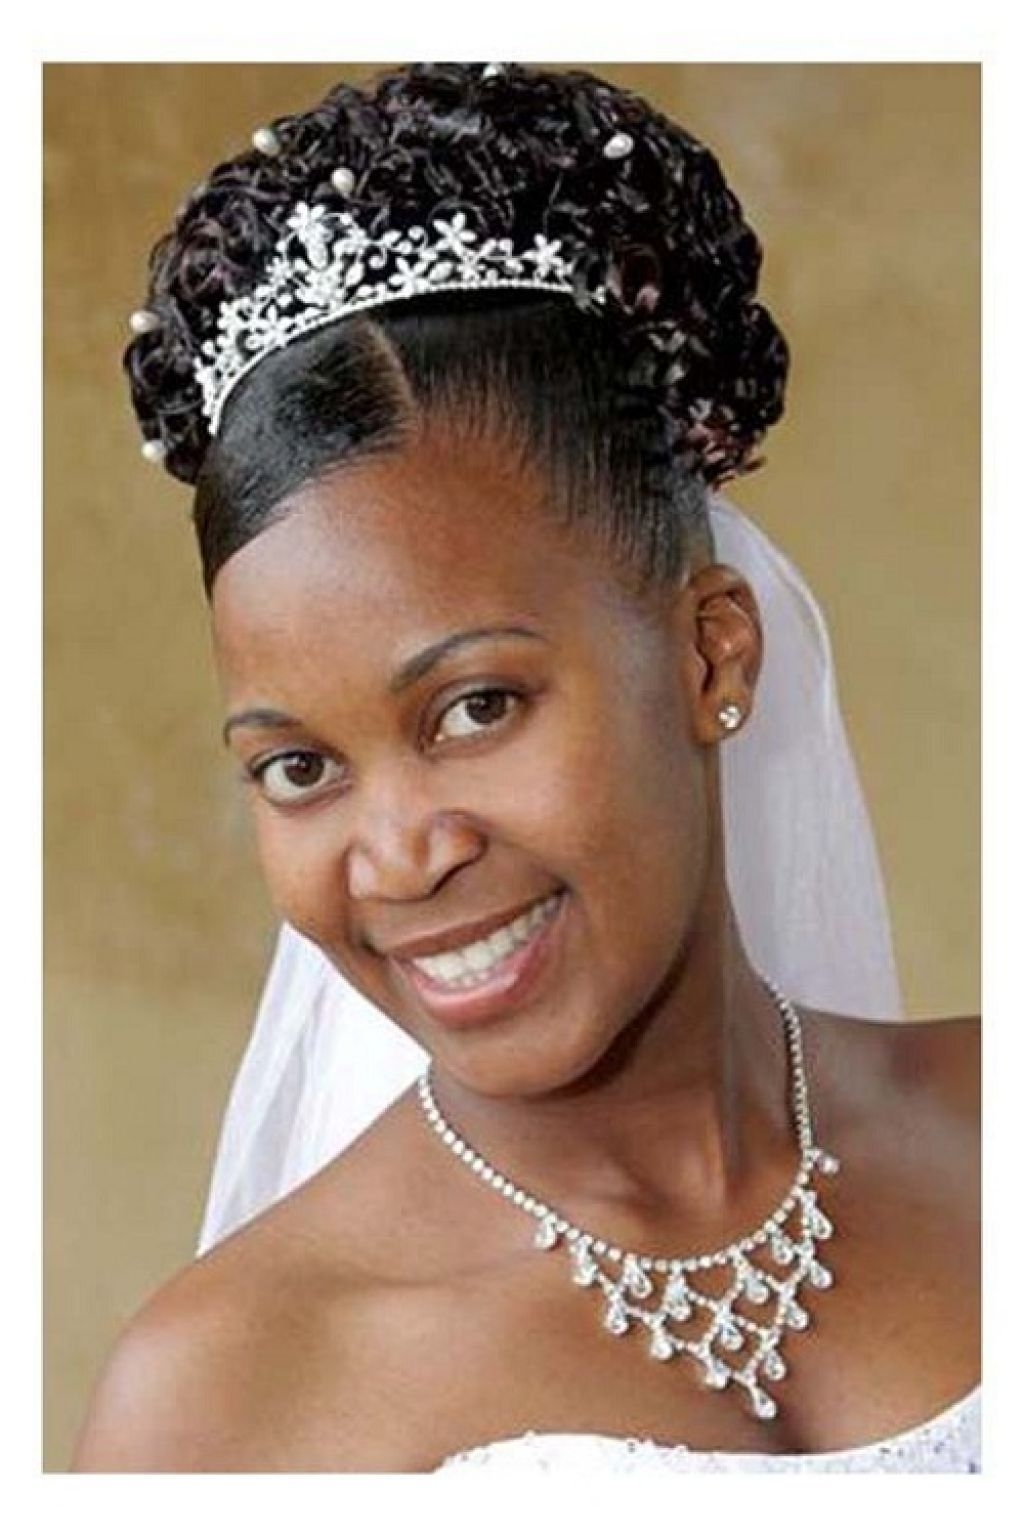 Black Pertaining To Most Popular Wedding Hairstyles For Natural African American Hair (View 15 of 15)